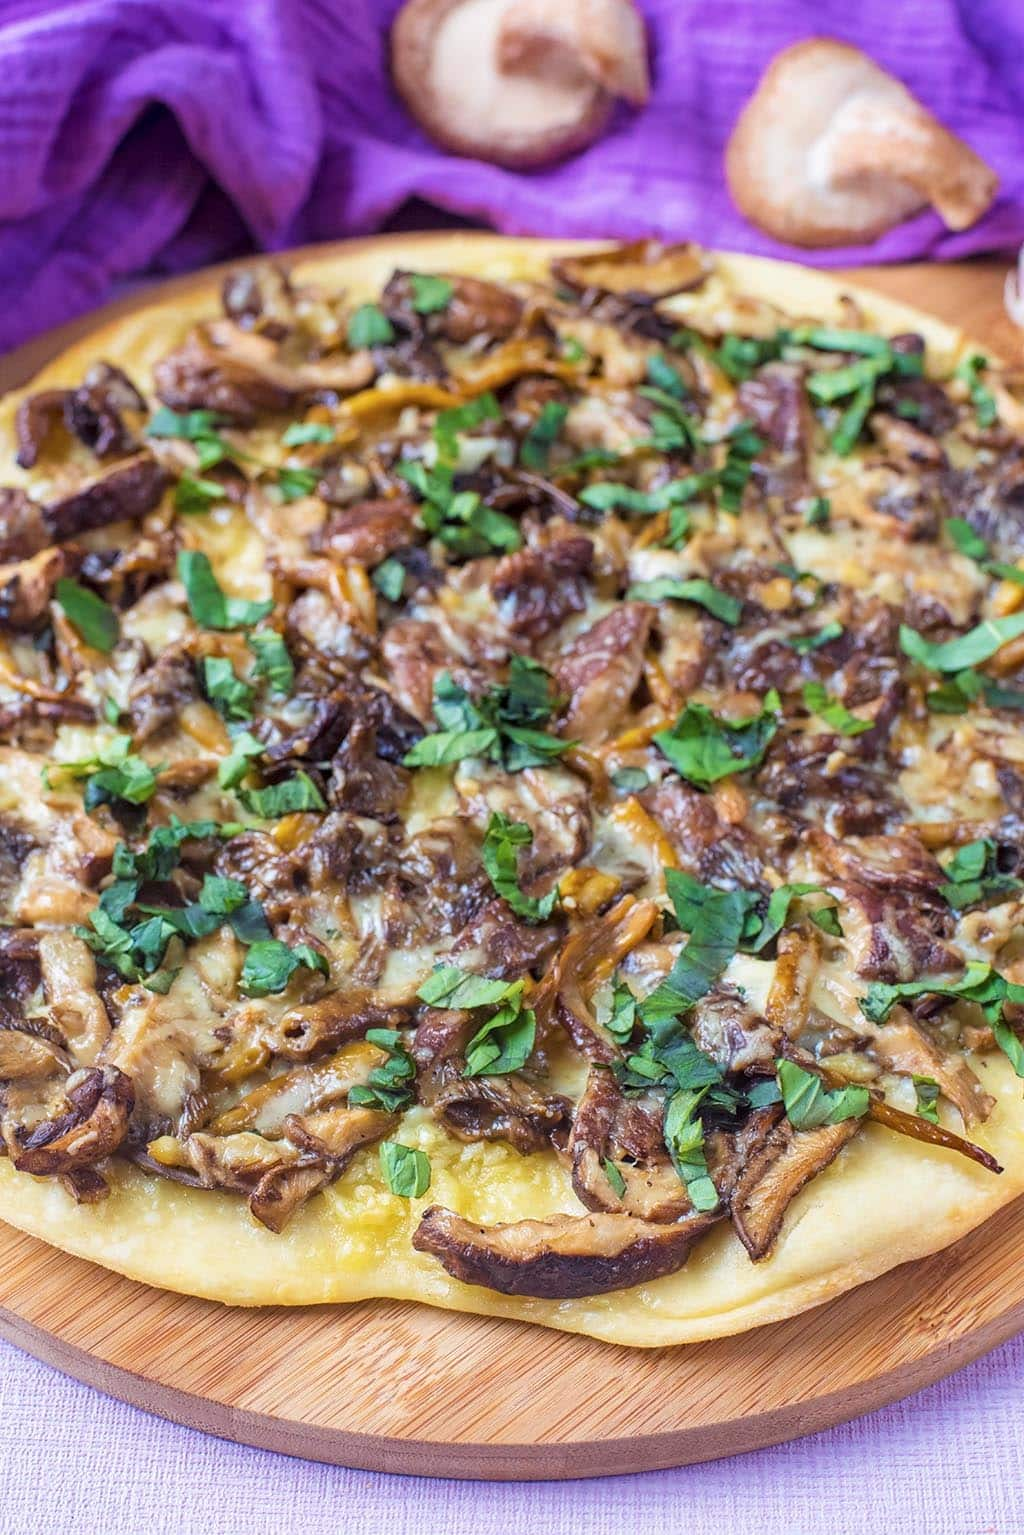 A mushroom pizza on a wooden serving board